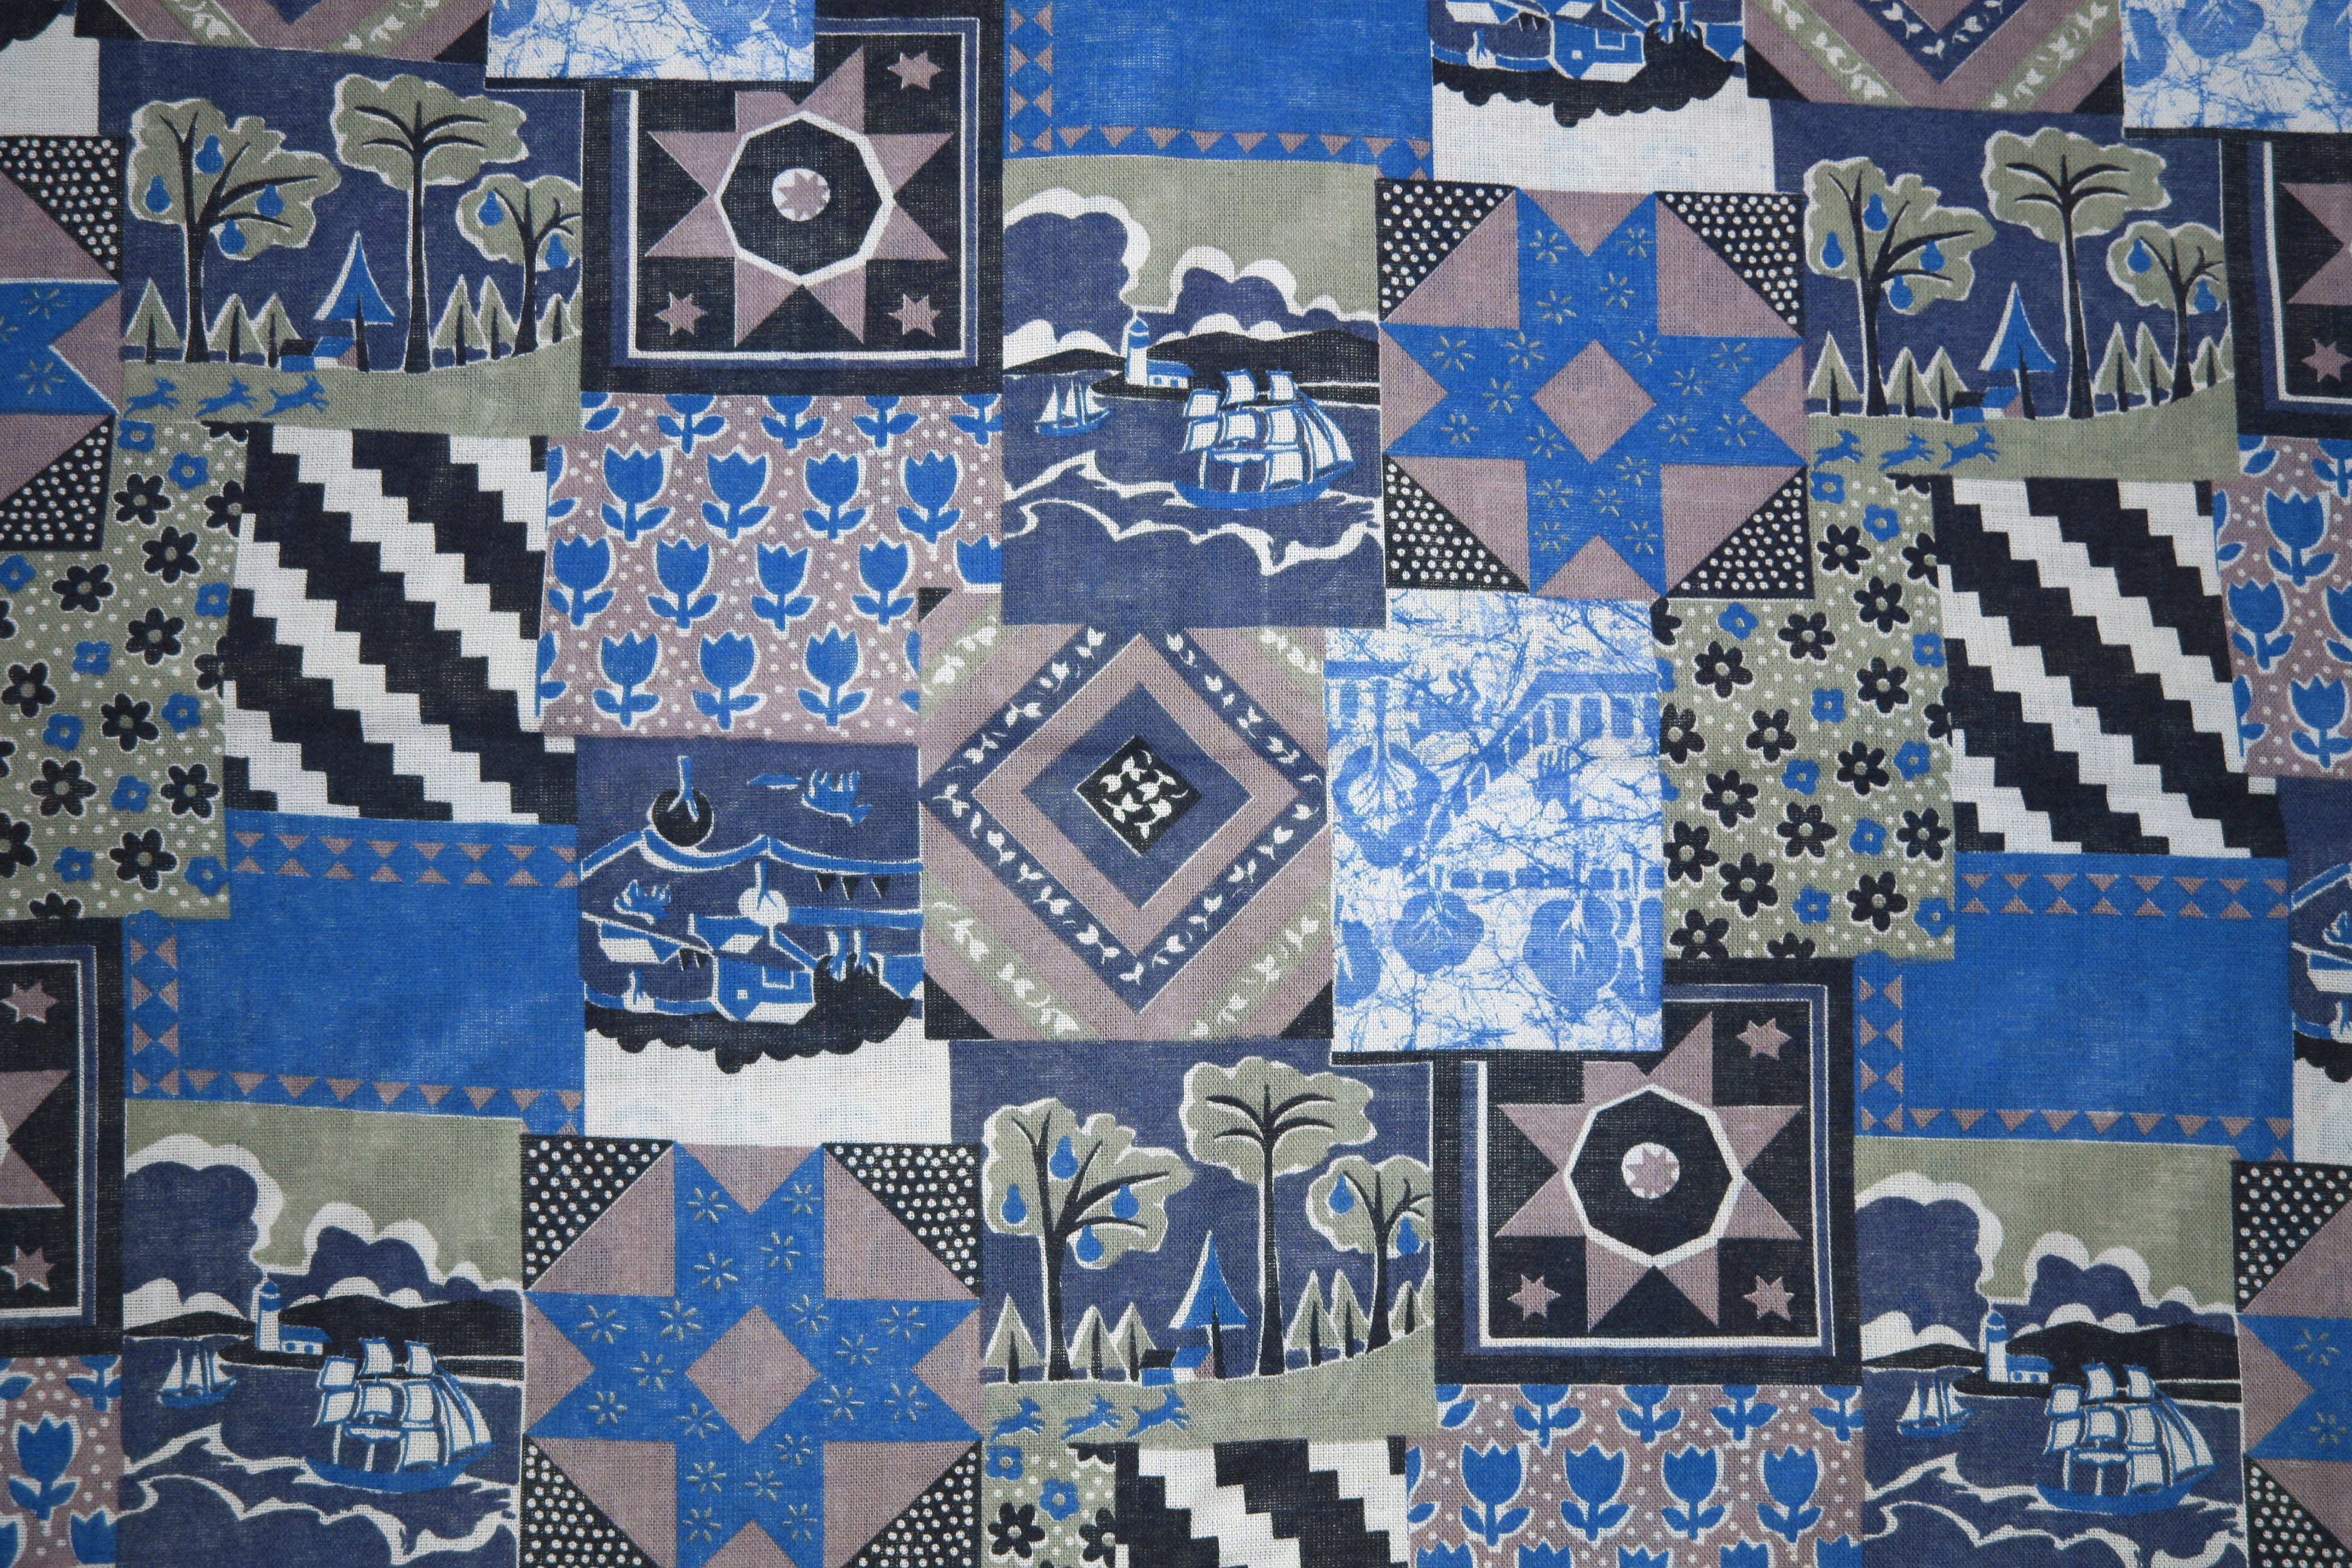 Blue Patchwork Quilt Fabric Texture Picture Free